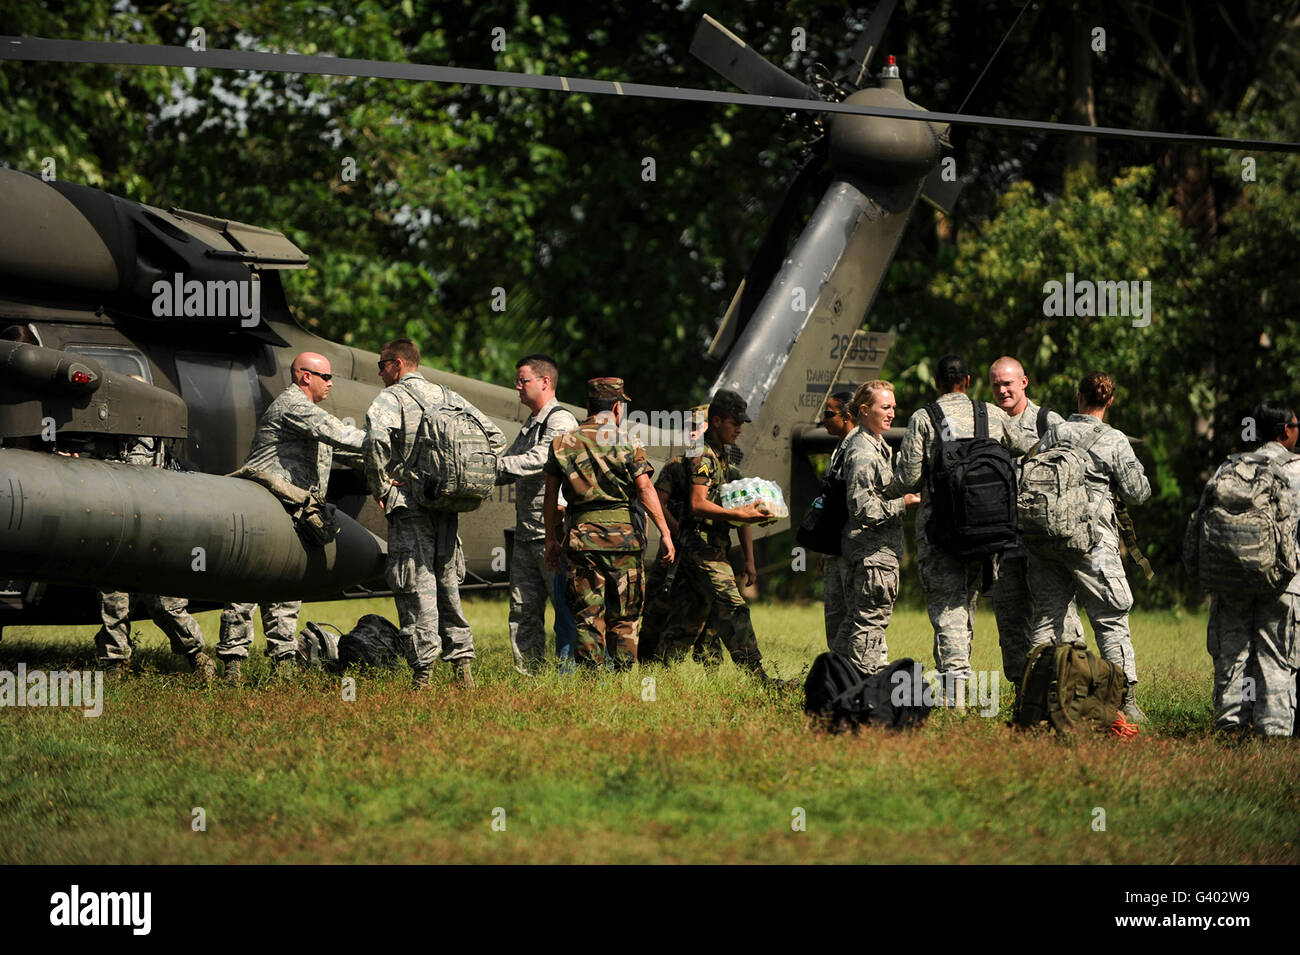 Soldiers unload medical supplies, food and water from a UH-60 Blackhawk. - Stock Image